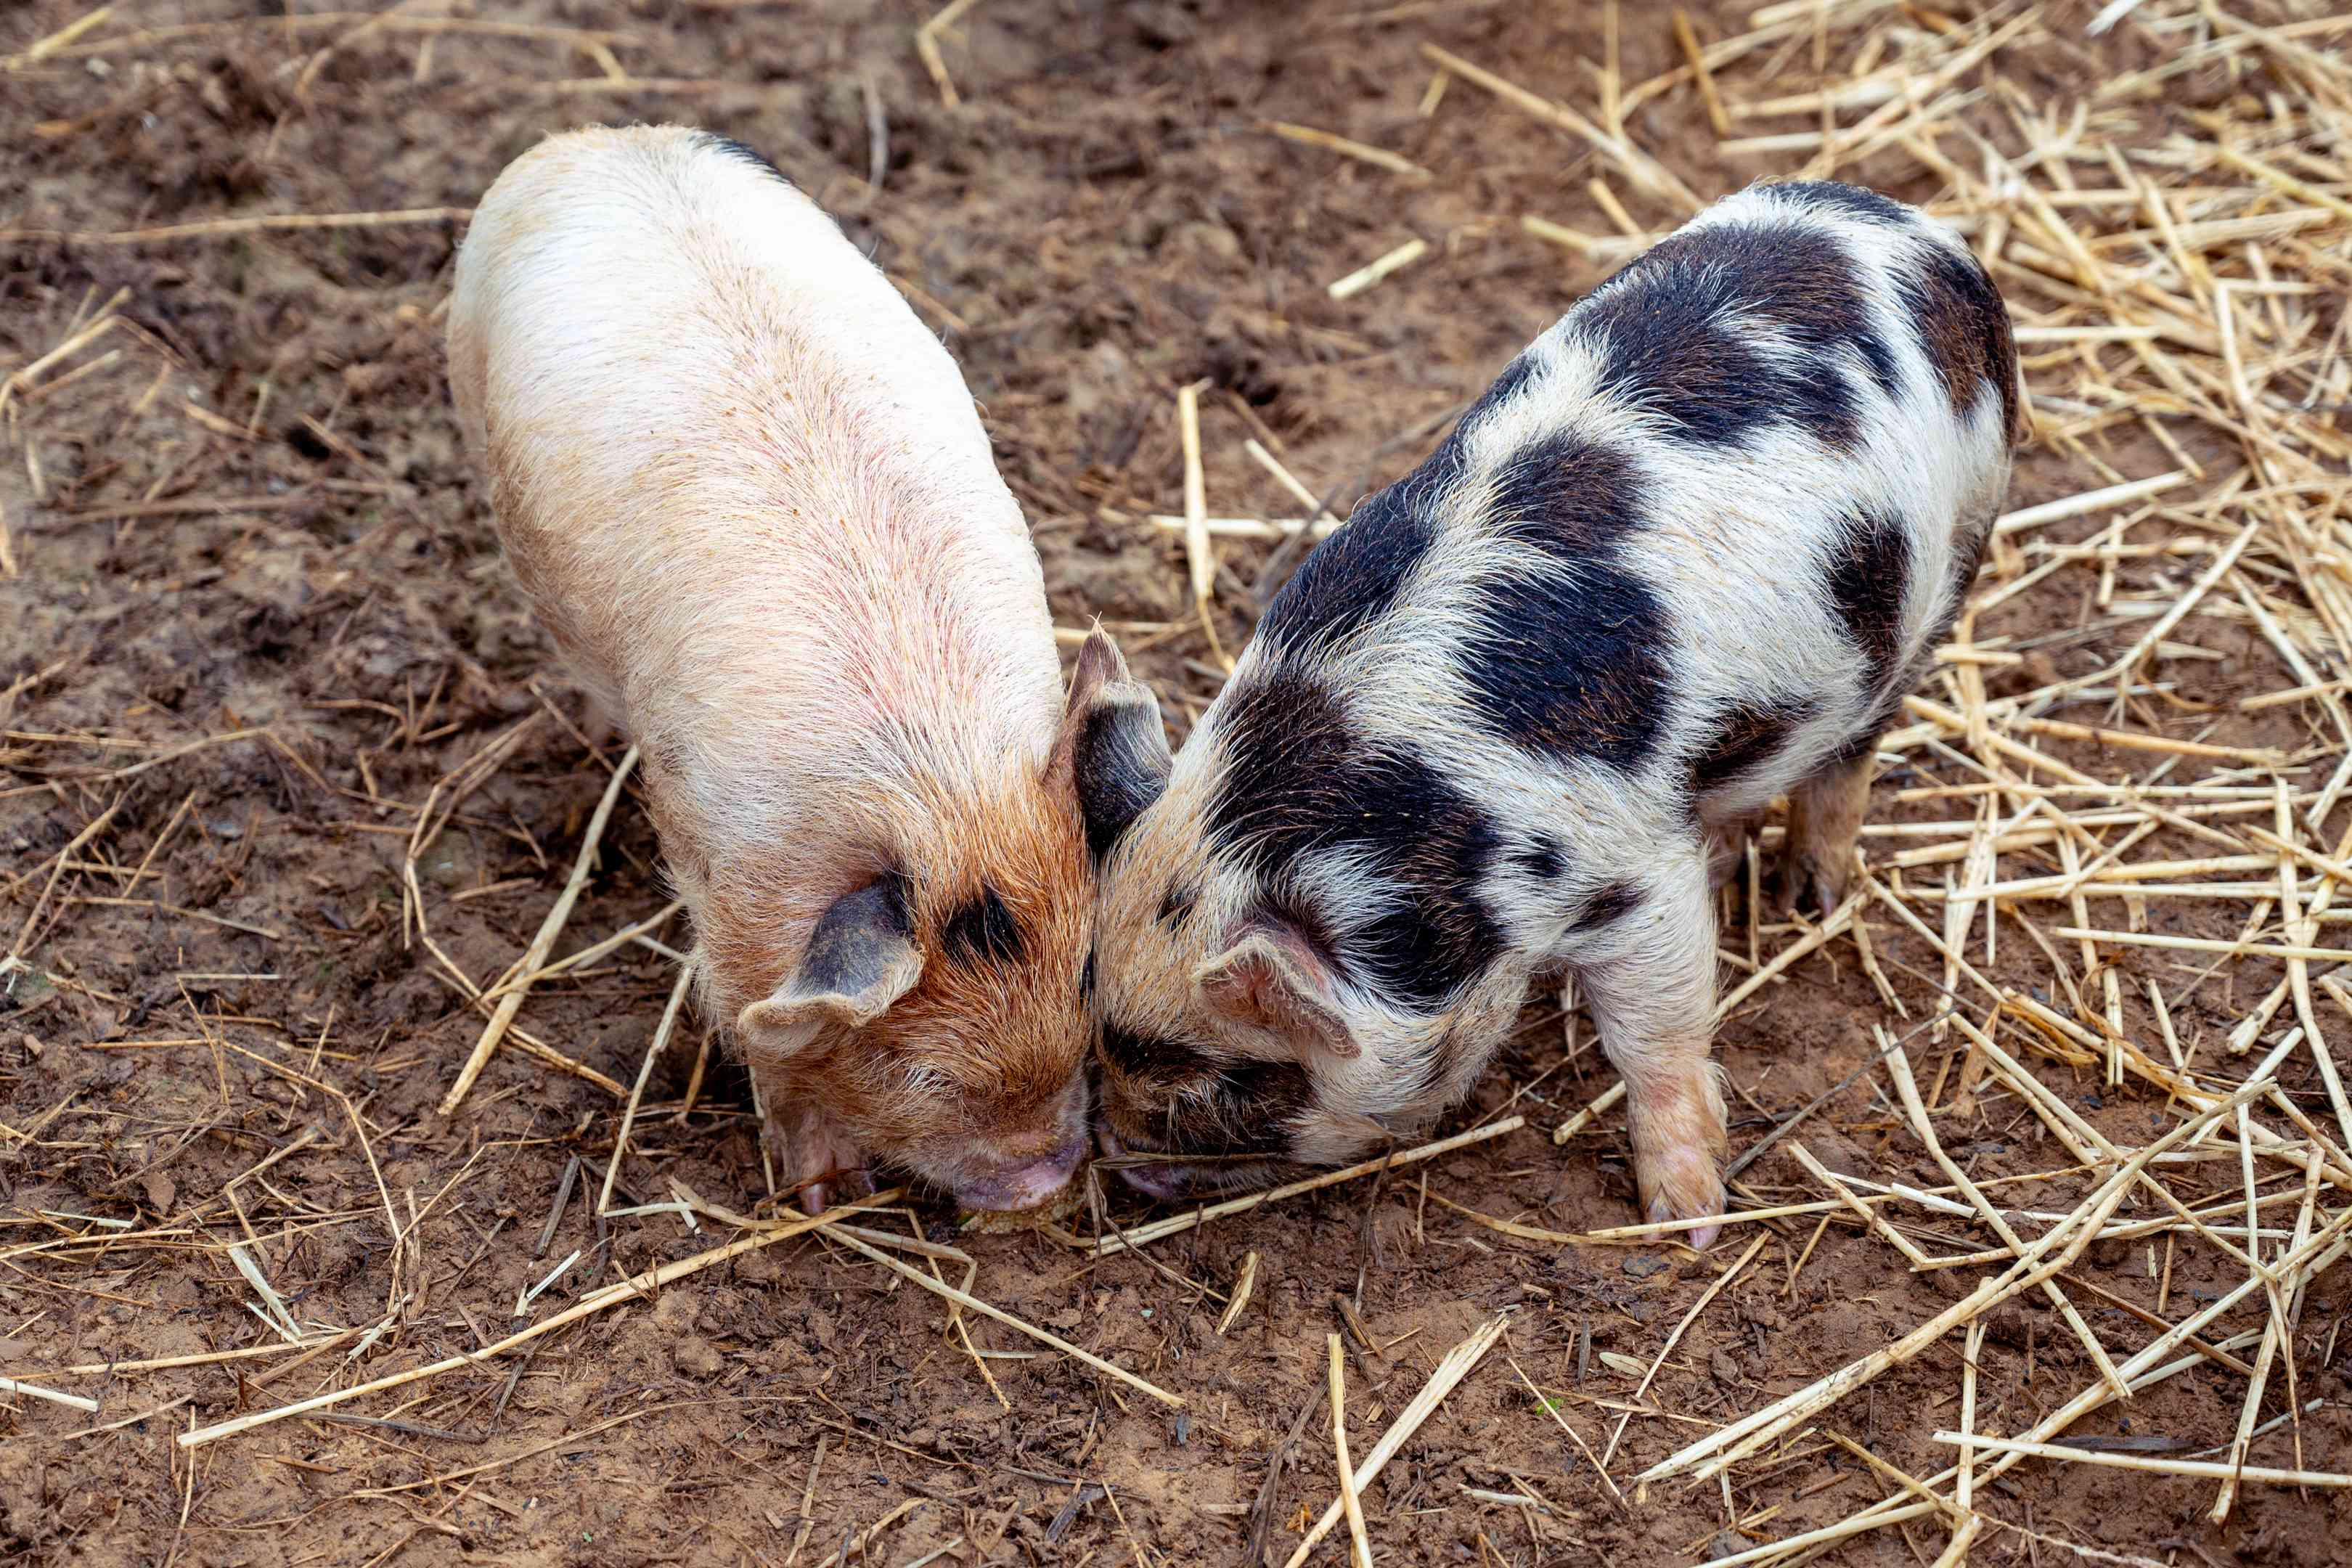 two baby pigs bury snouts in muddy, straw-covered ground